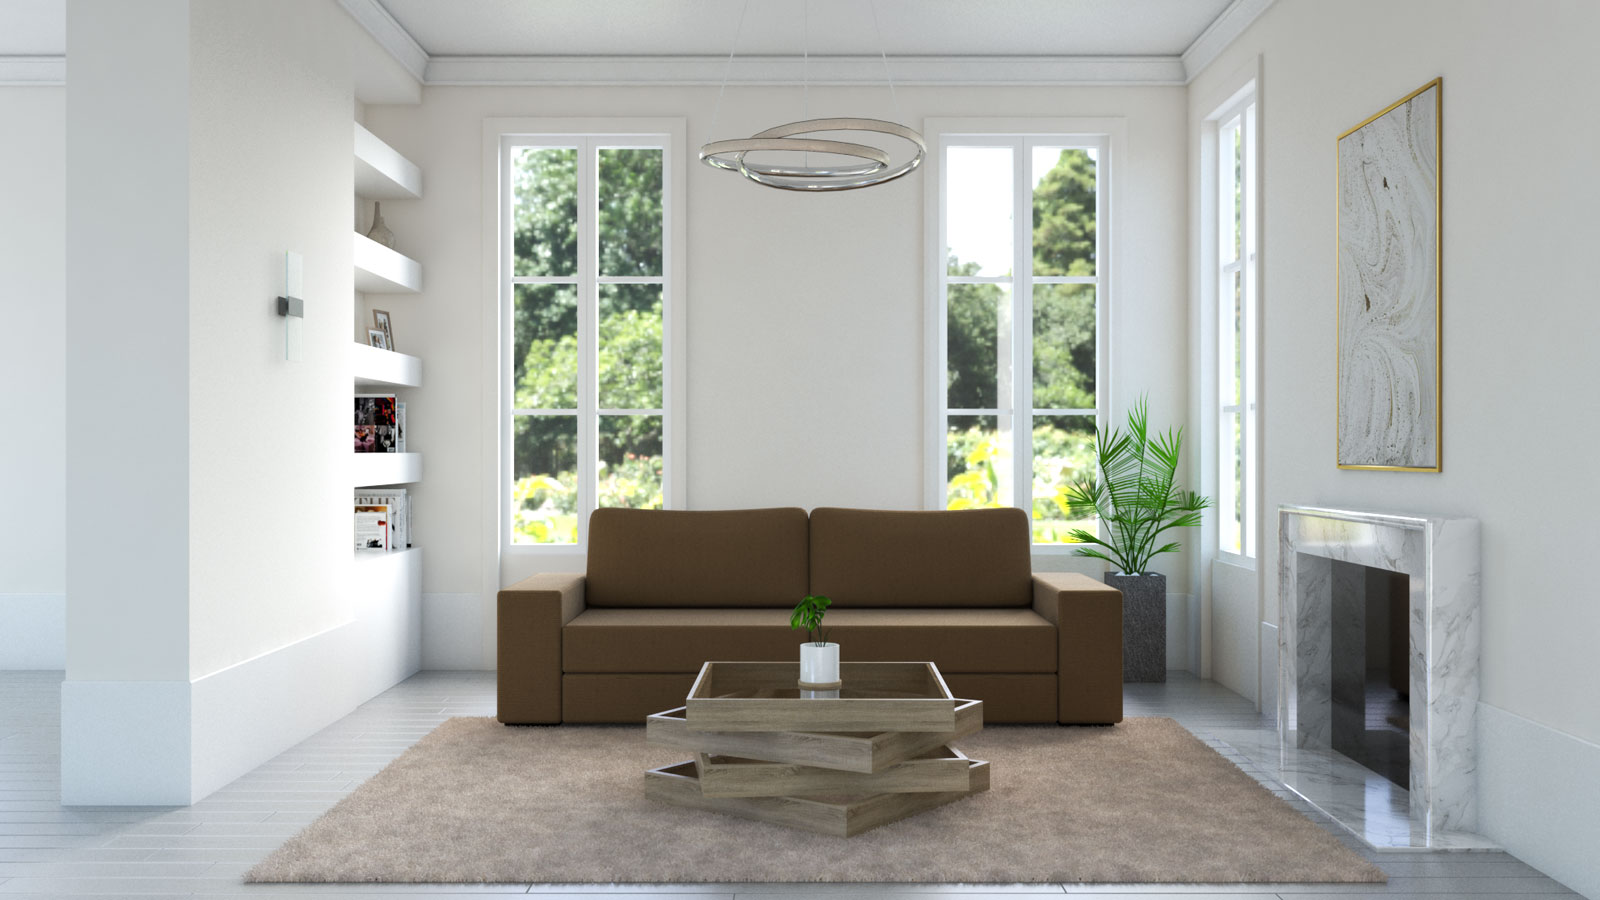 Tan rug with brown sofa in living room